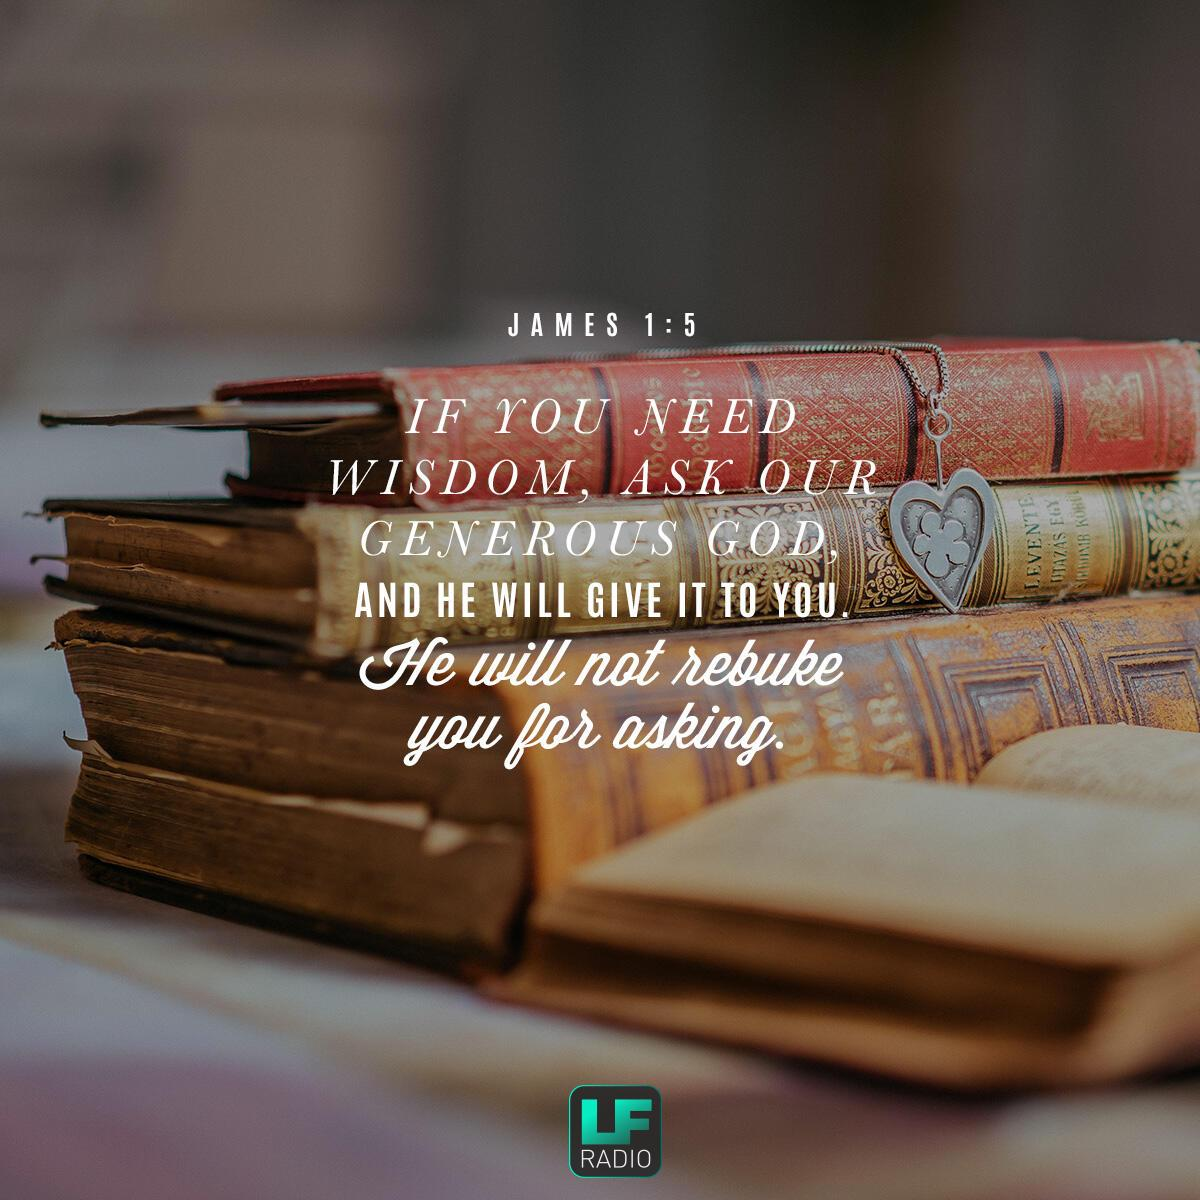 James 1:5 - Verse of the Day